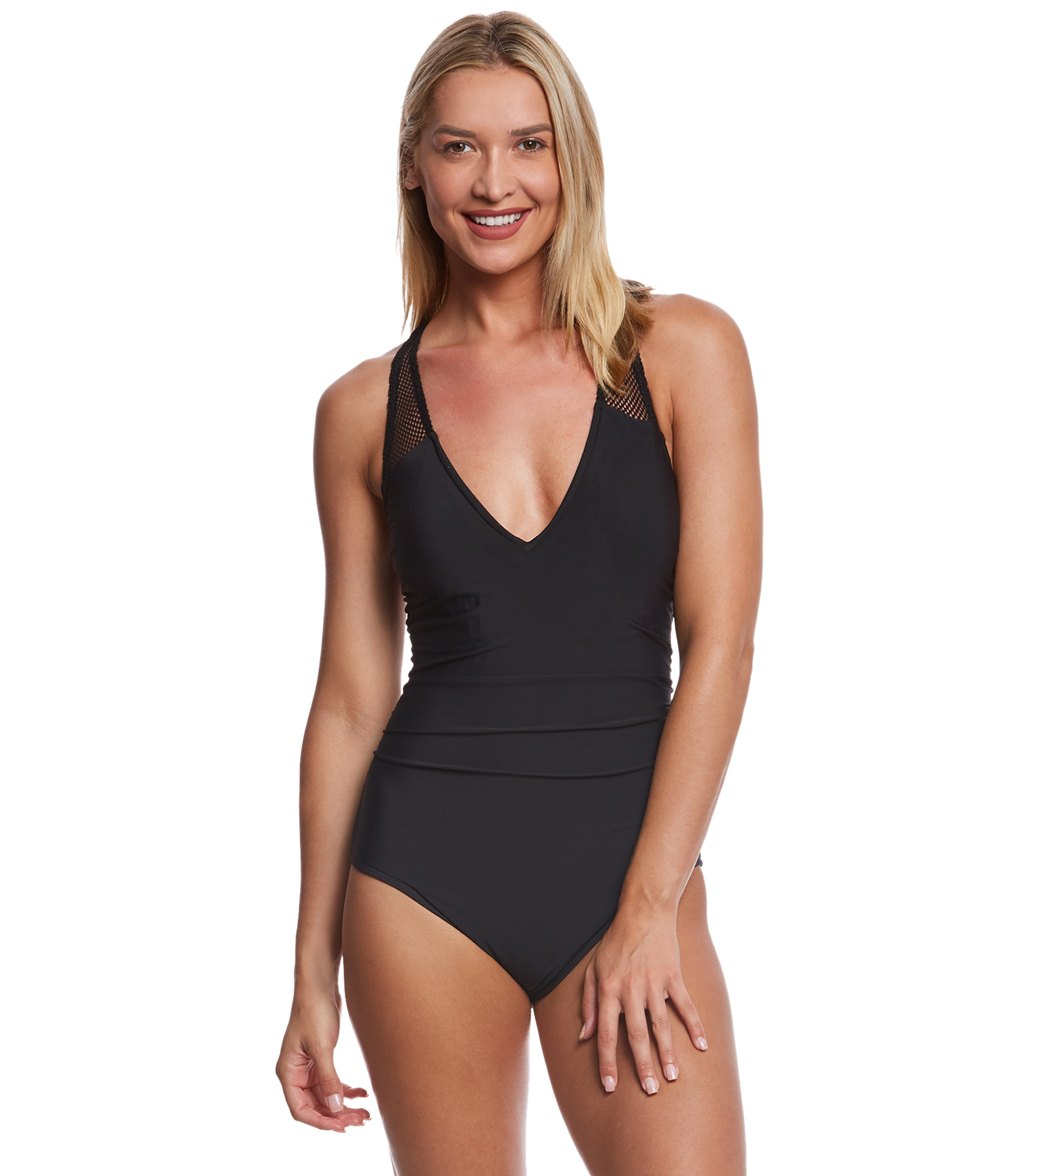 cc919bed90f42 Magicsuit by Miraclesuit Solid Trinity One Piece Swimsuit at SwimOutlet.com  - Free Shipping